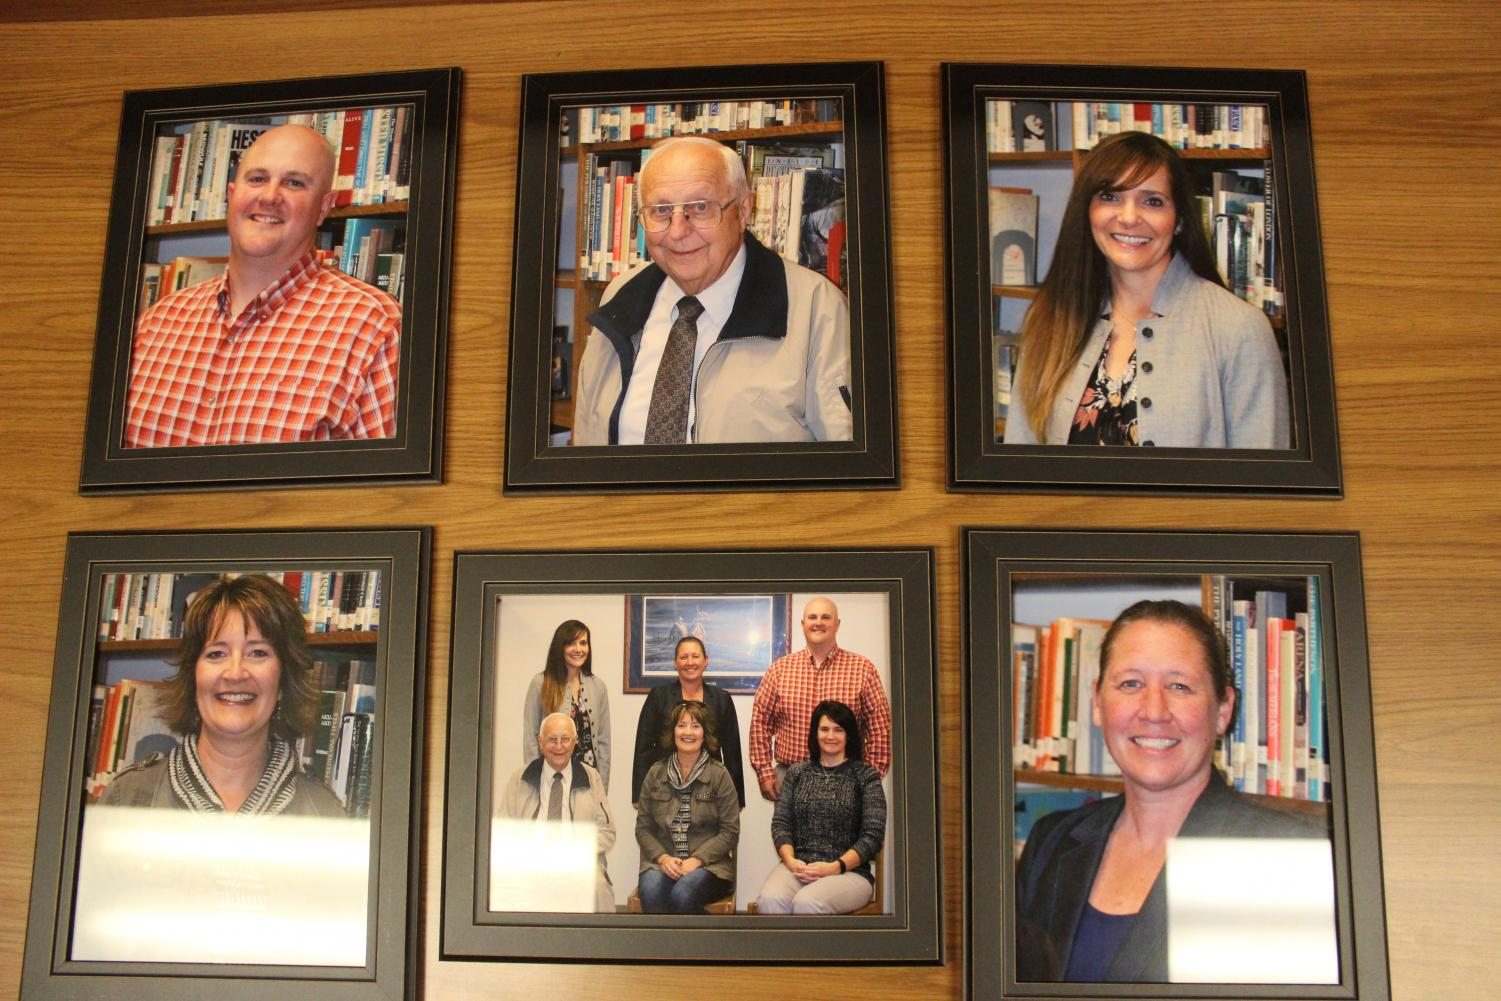 Photos of the Atlantic School Board members are displayed in the Media Center.